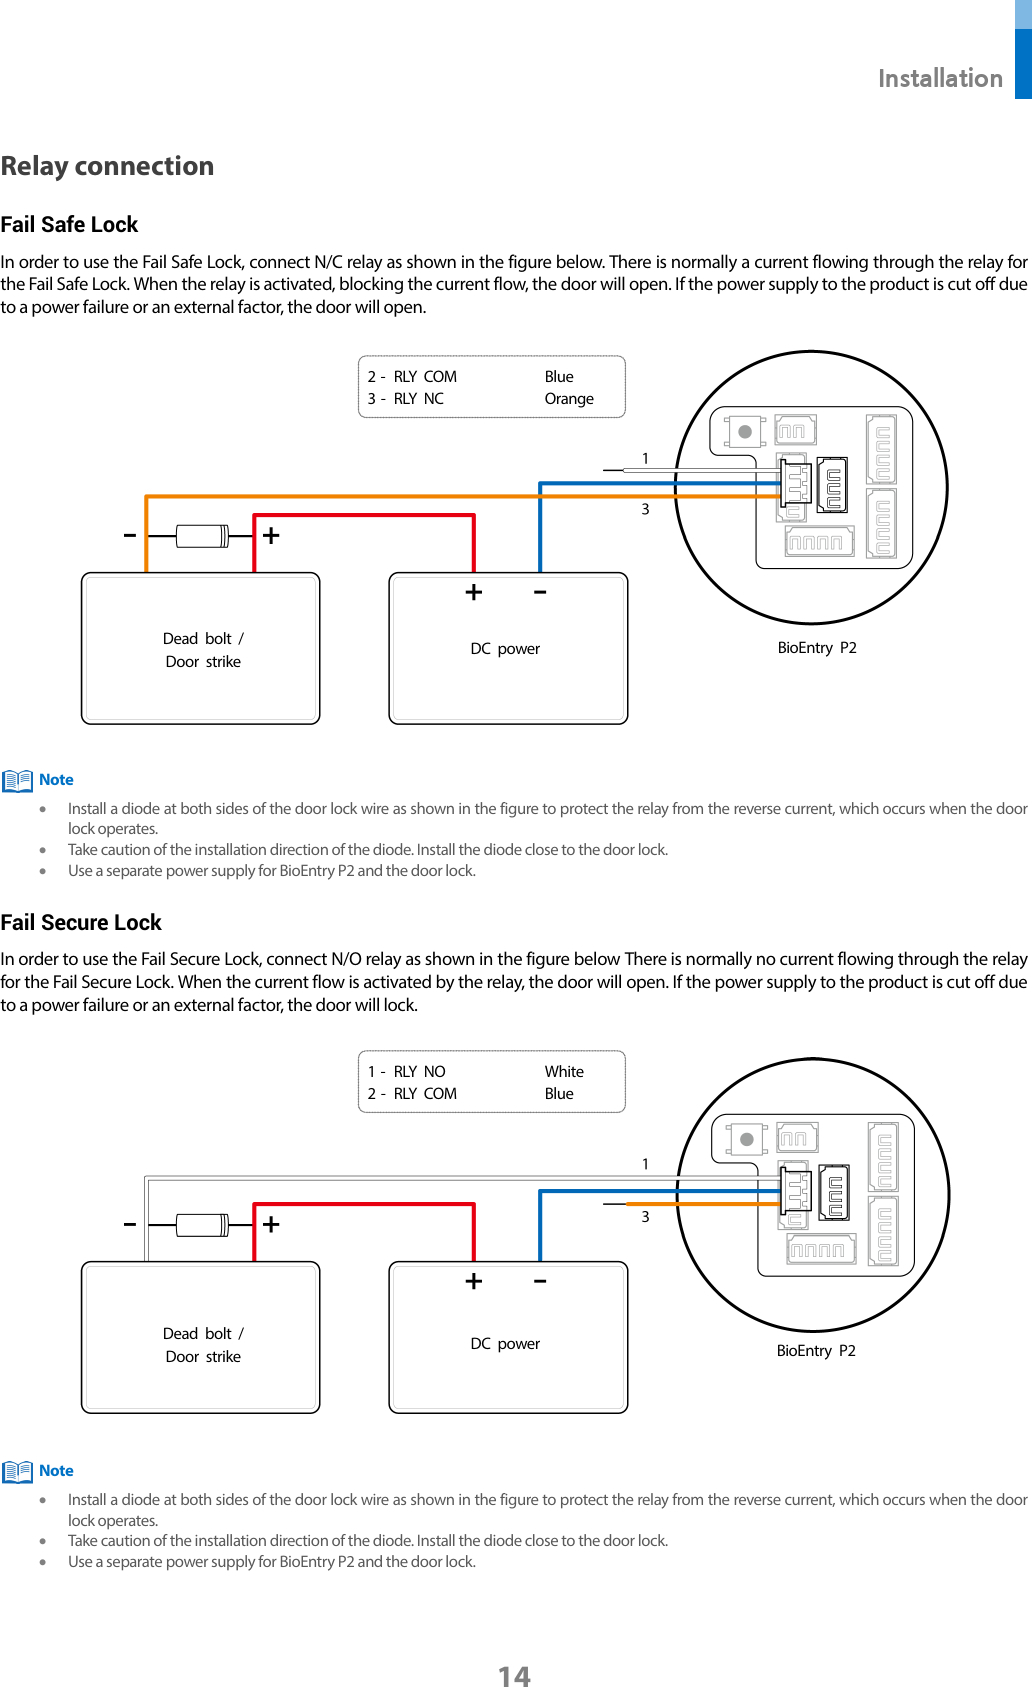 fire alarm flow switch wiring diagram Download-Water Flow Switch Wiring Diagram Tamper and Flow Switch Wiring Diagrams Lovely Bep2 Od Bioentry 20-t